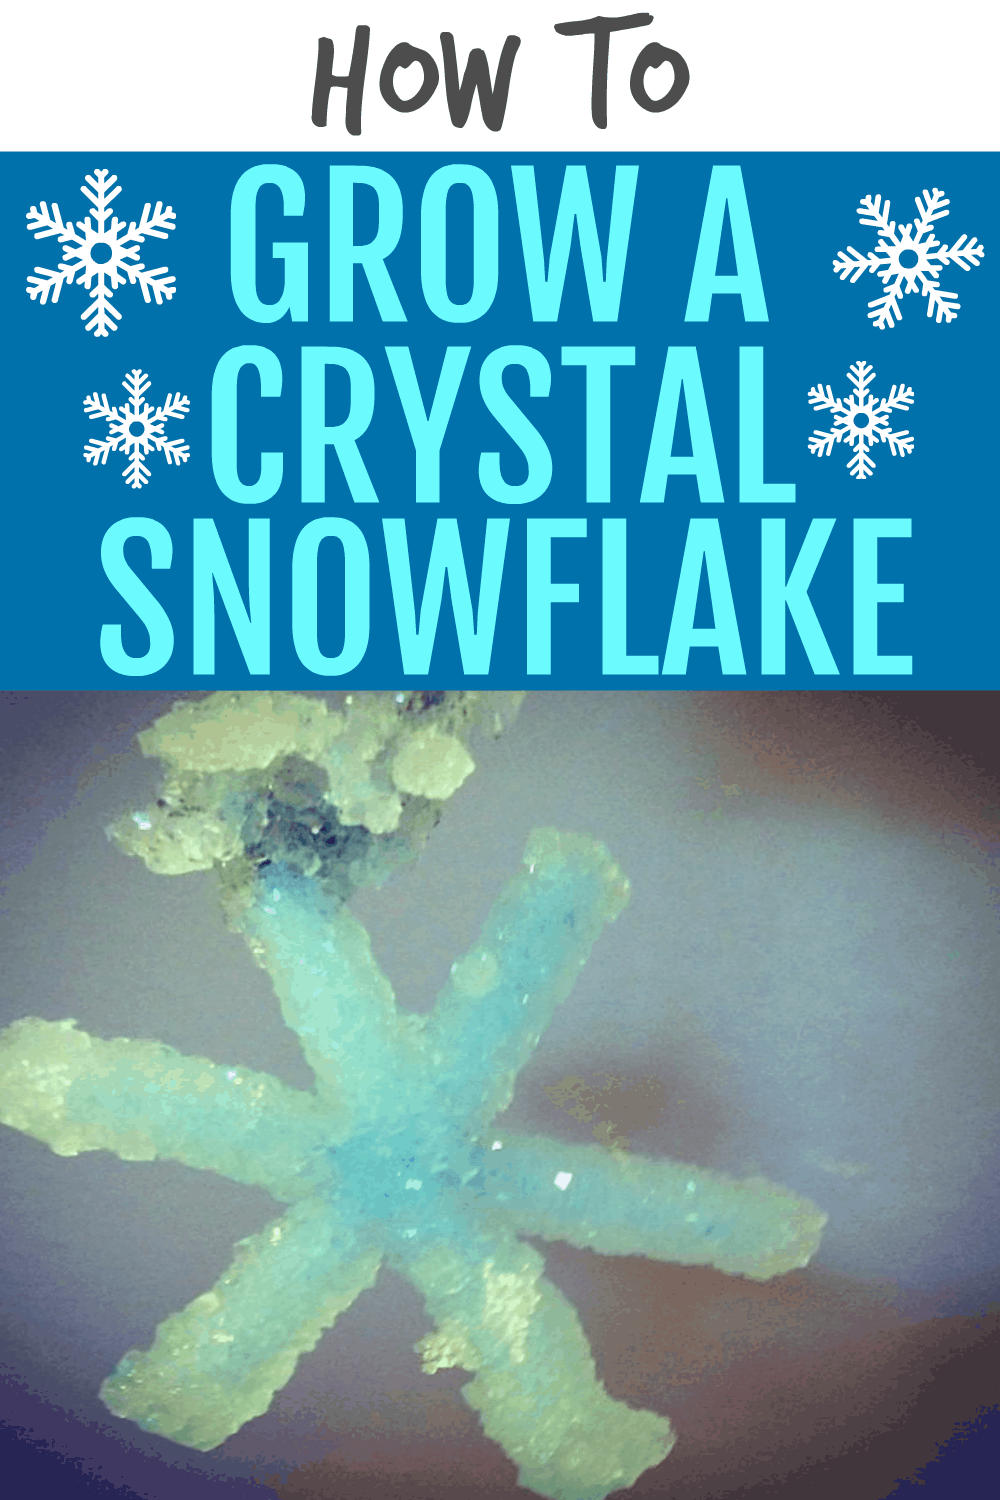 SNOWFLAKE CRAFT FOR KIDS TEXT OVER A CRYSTAL BLUE SNOWFLAKE